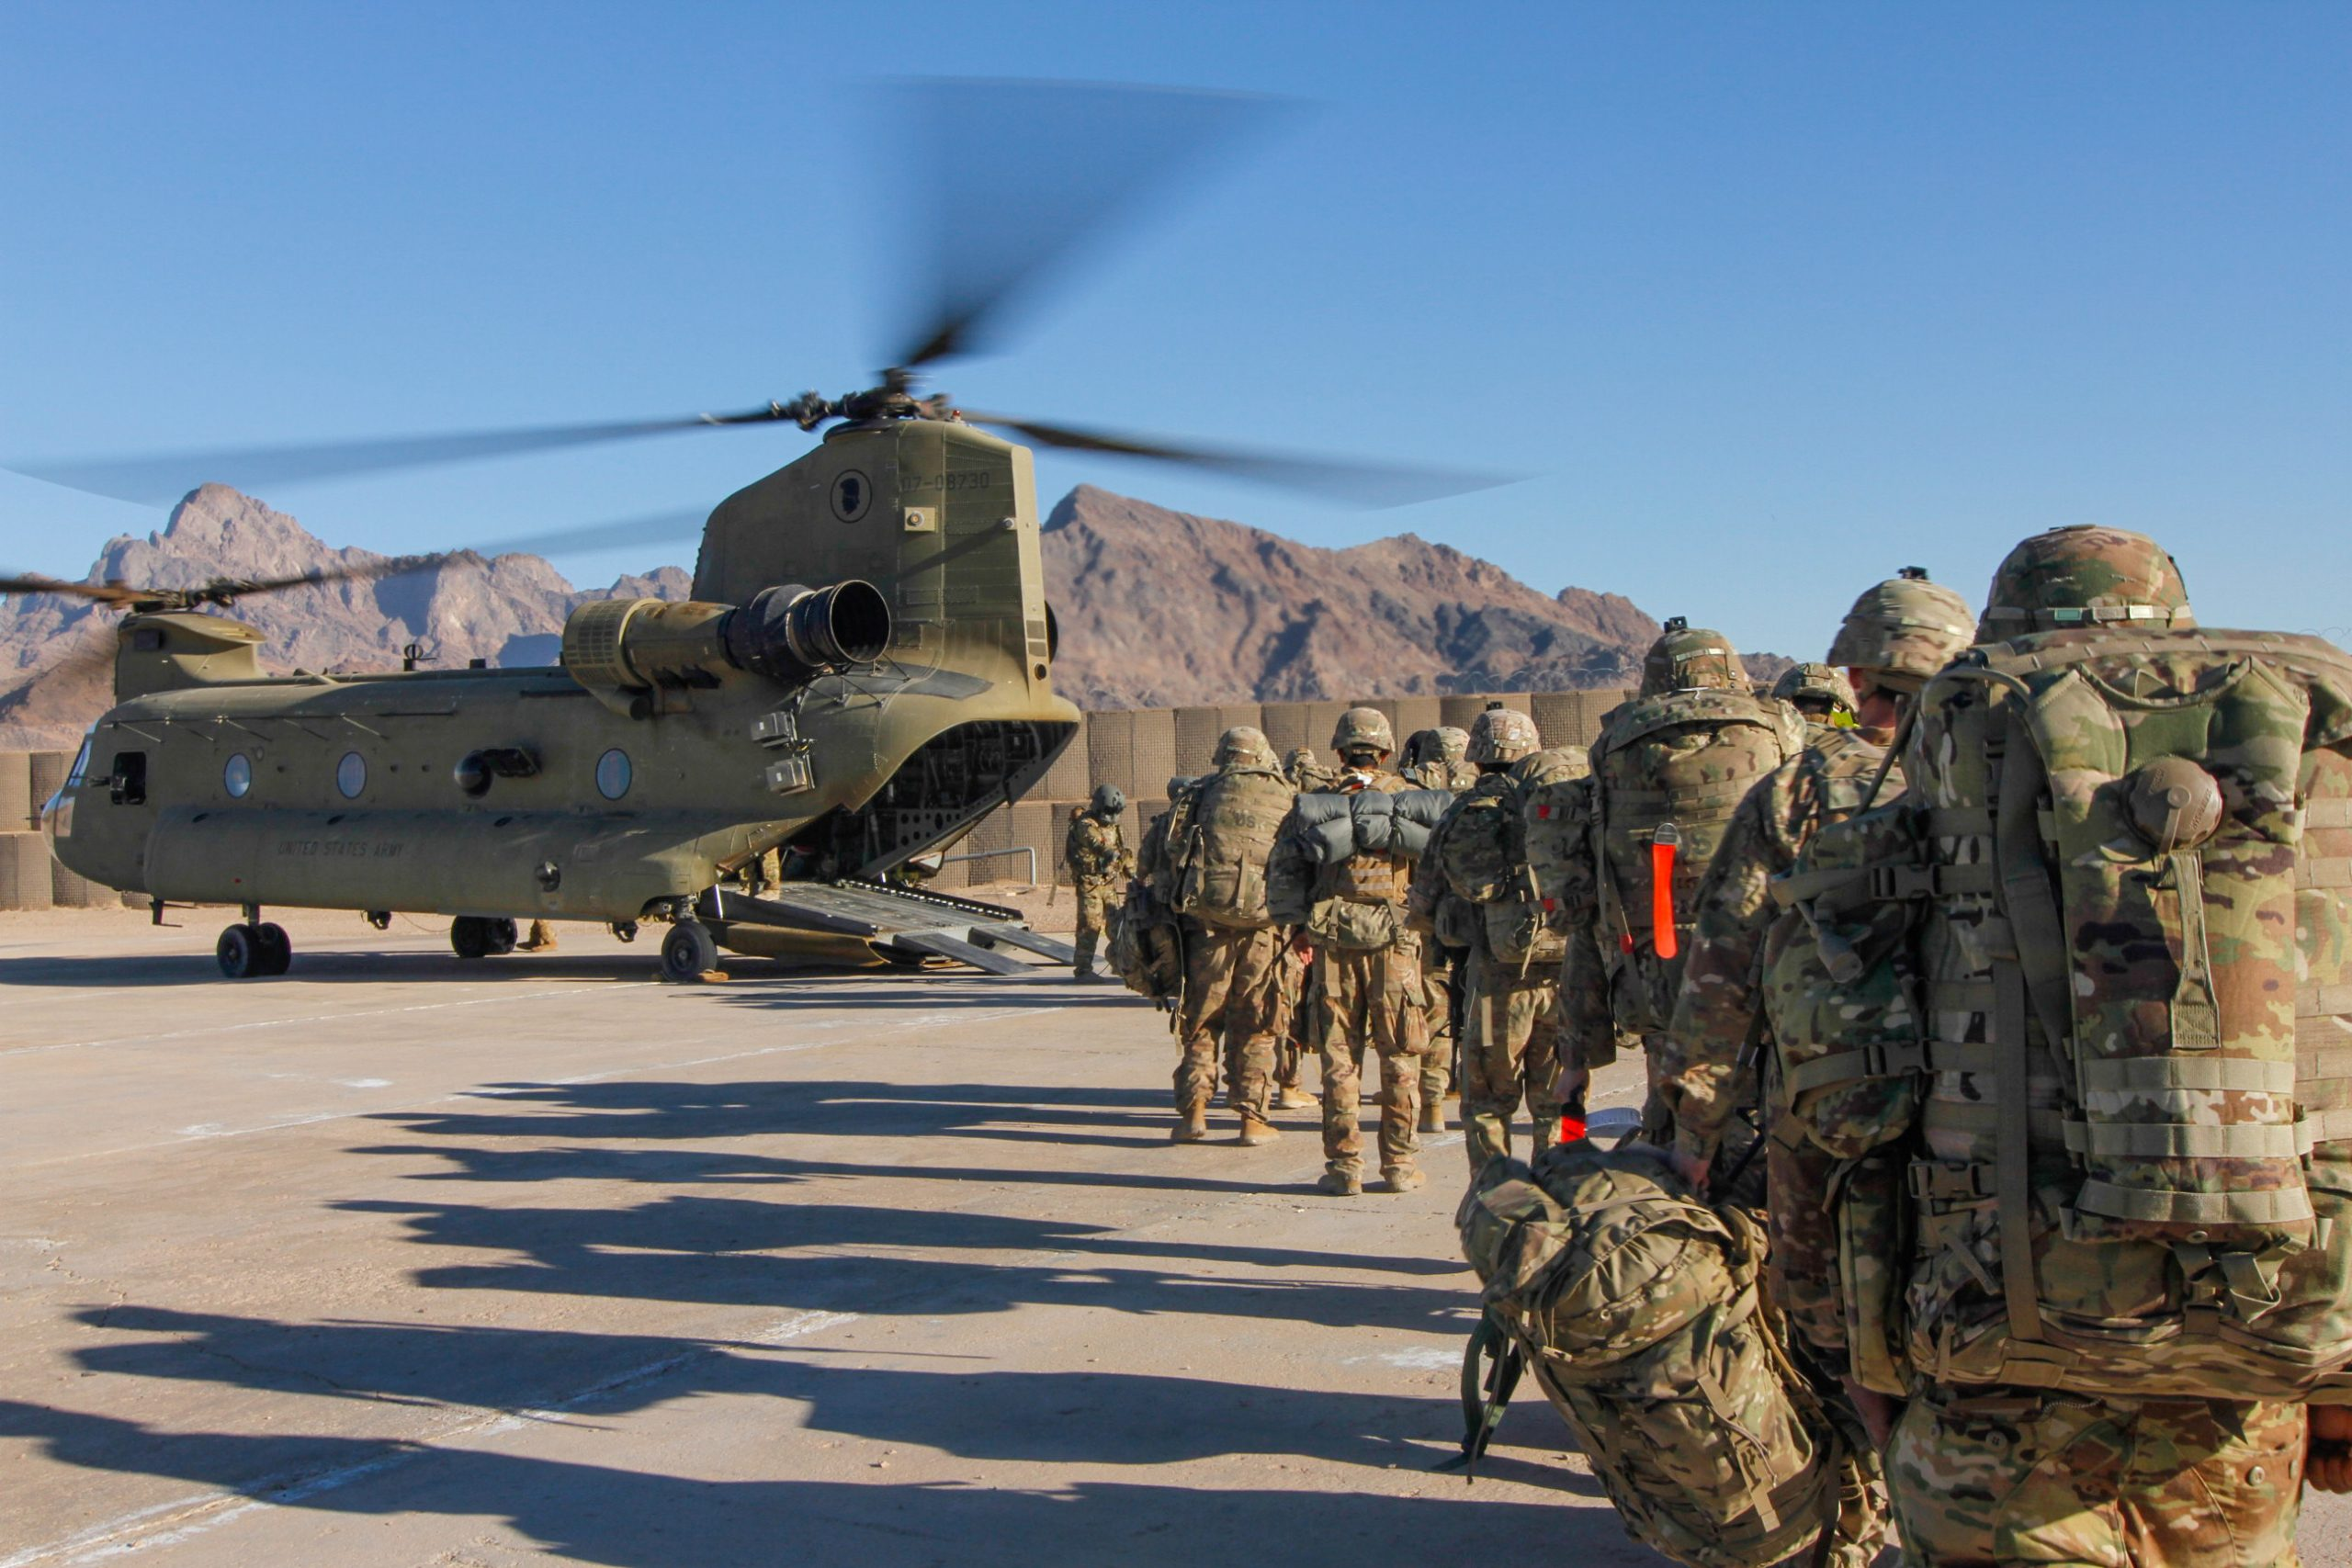 WSJ: US plans to move troops from Afghanistan closer to Russian borders